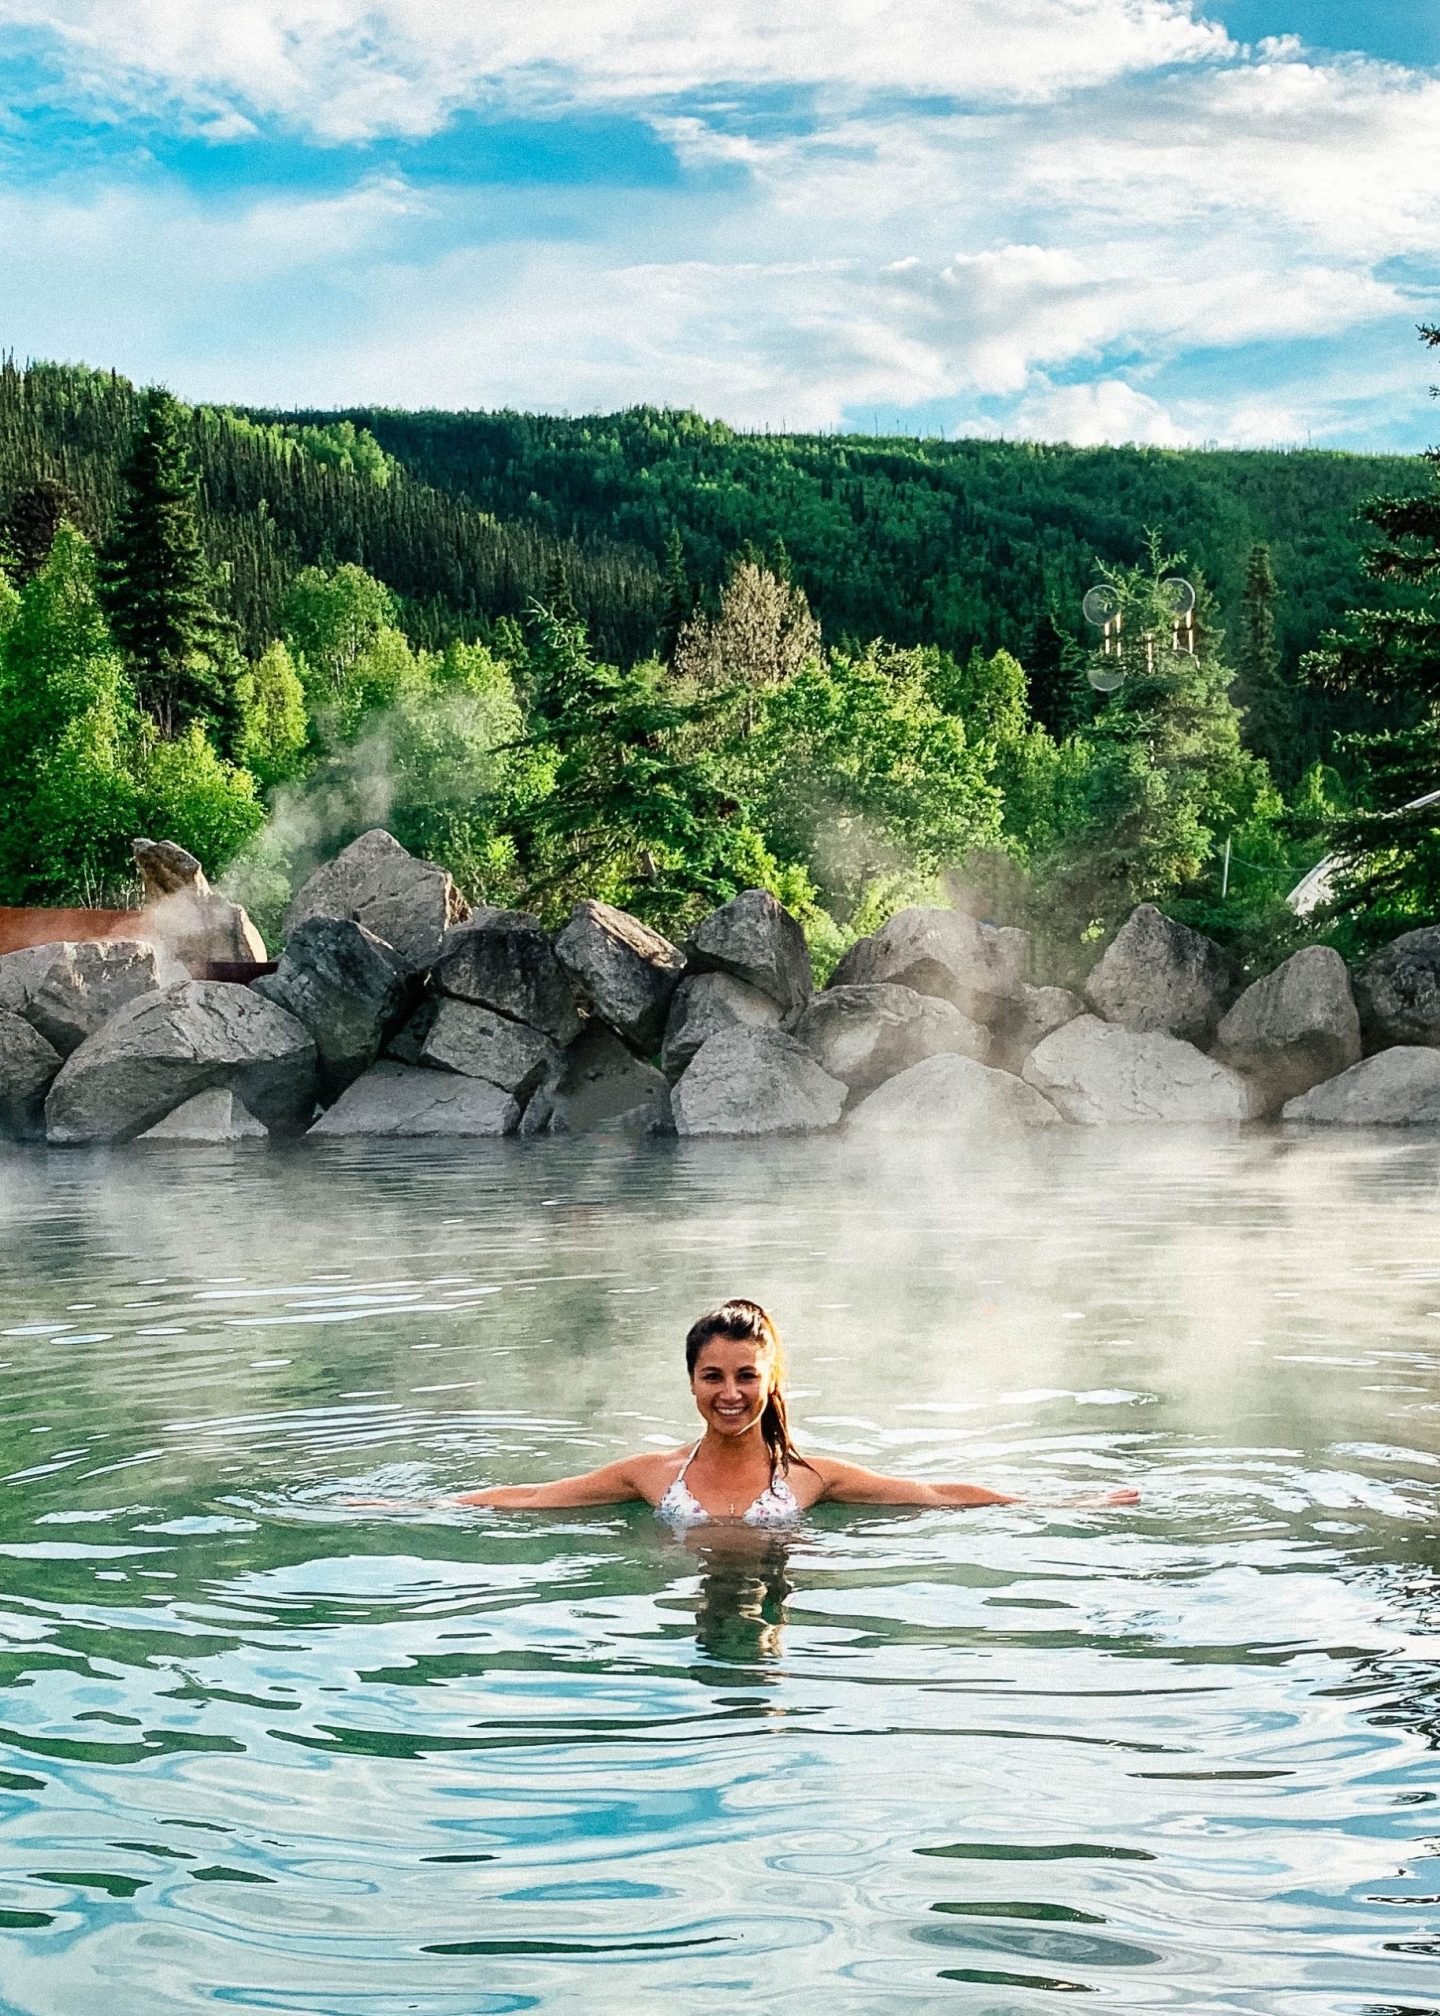 Alaska's Chena Hot Springs Resort has a beautiful outdoor hot spring surrounded by nature.